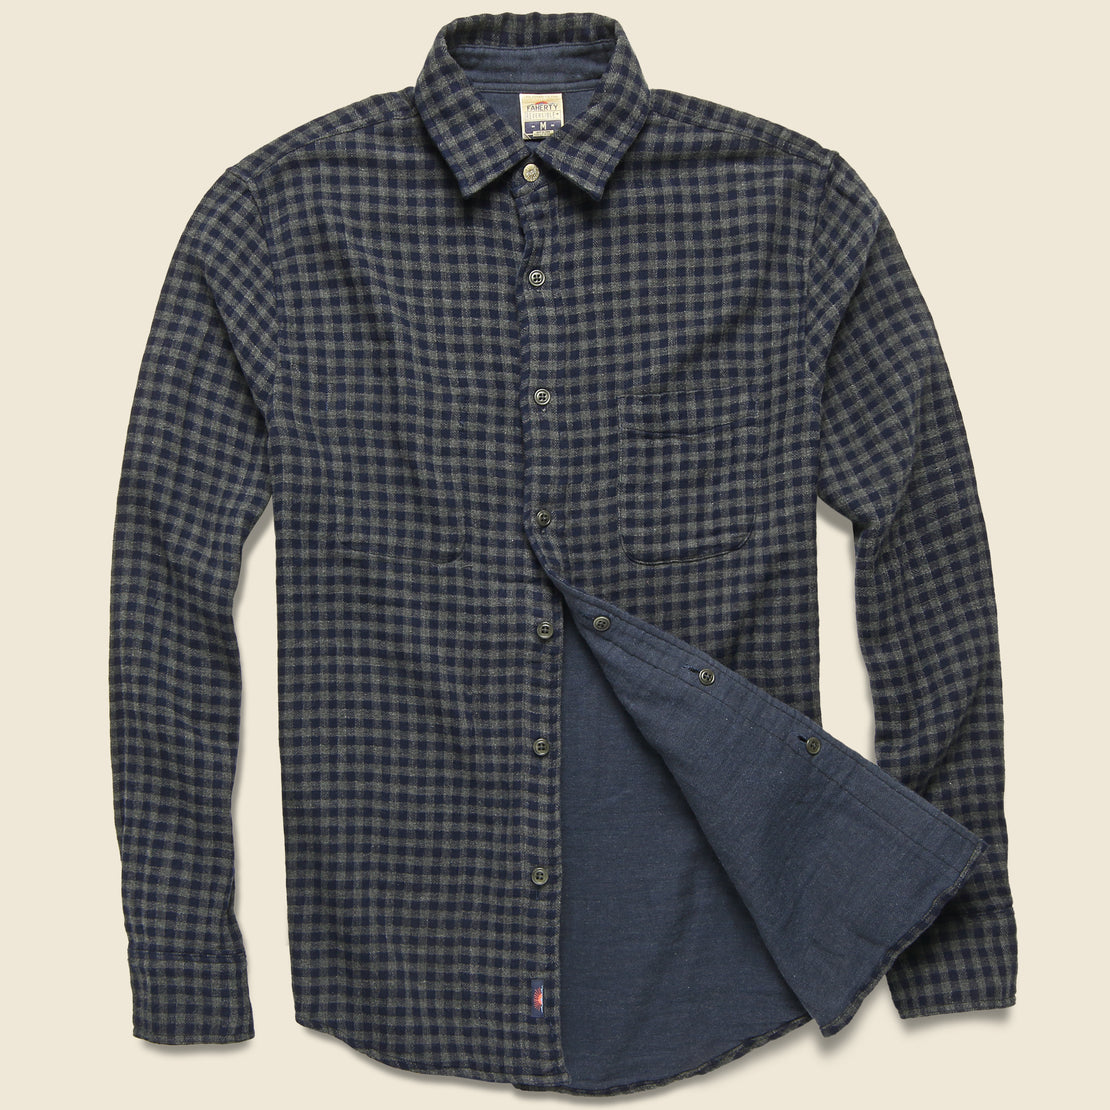 Faherty Belmar Workshirt - Charcoal Navy Check